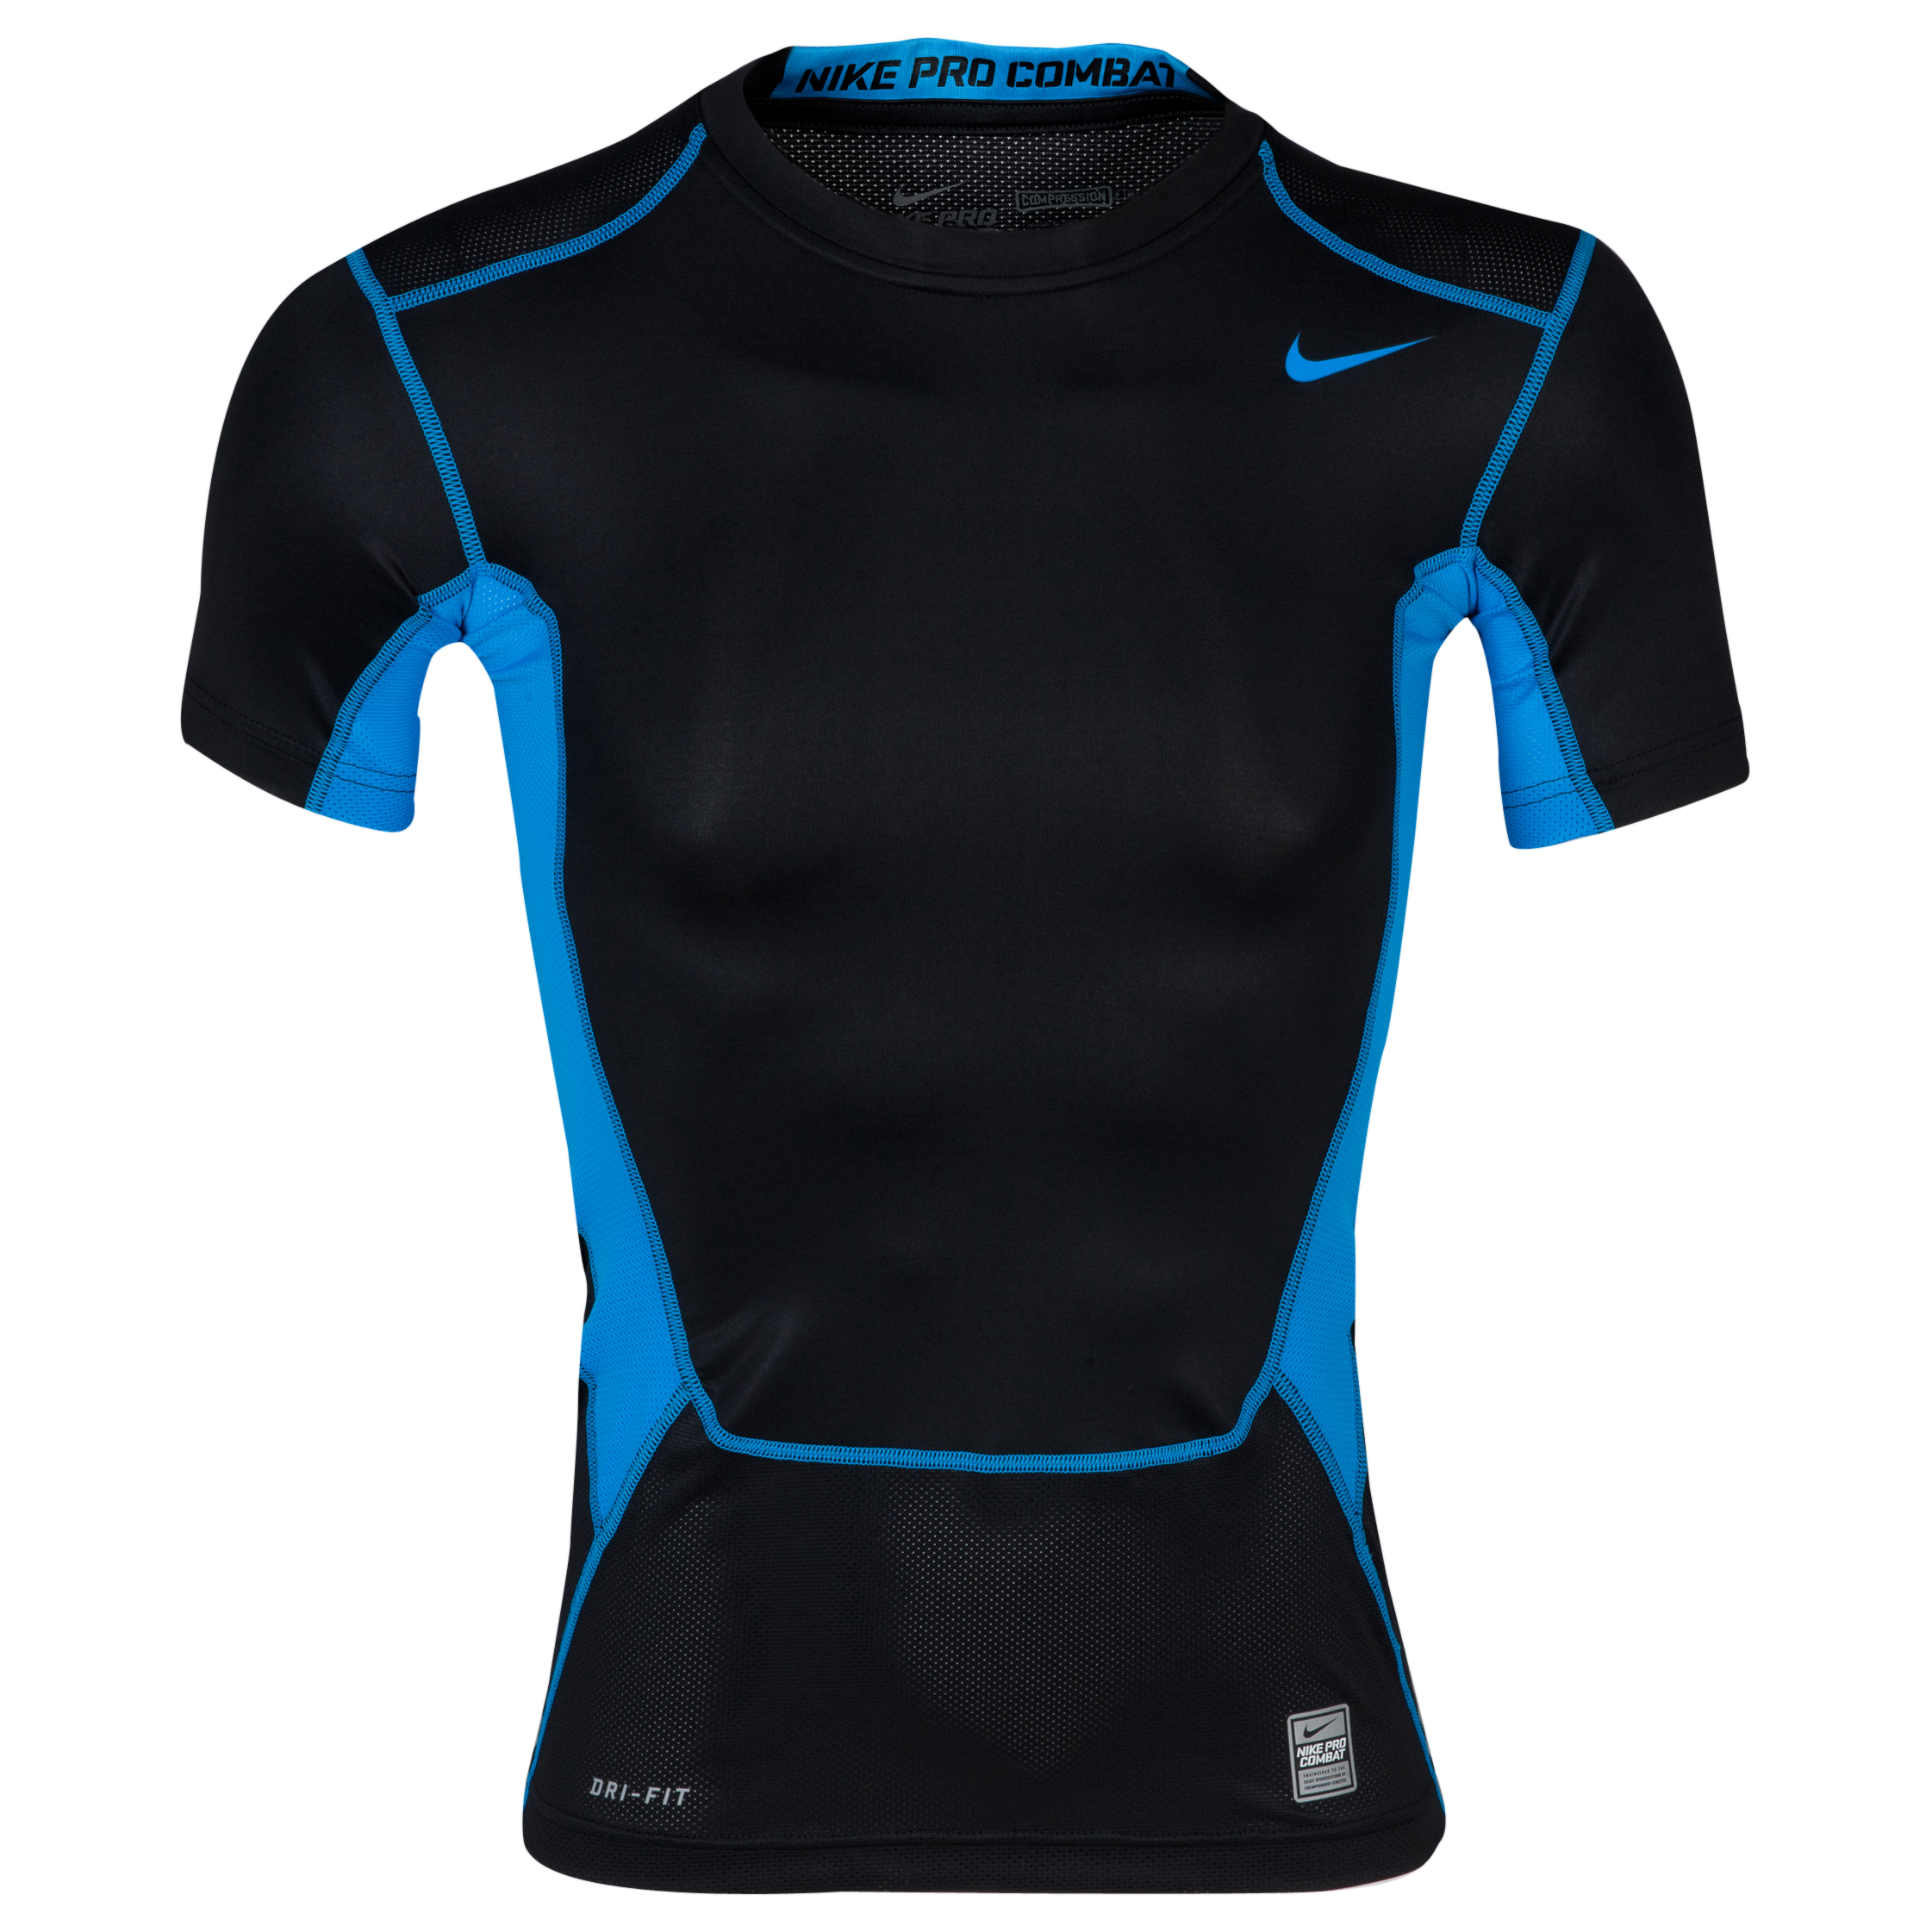 Nike Pro Combat Hypercool 1.2 Base Layer Top - Black/Blue Hero/Blue Hero Black